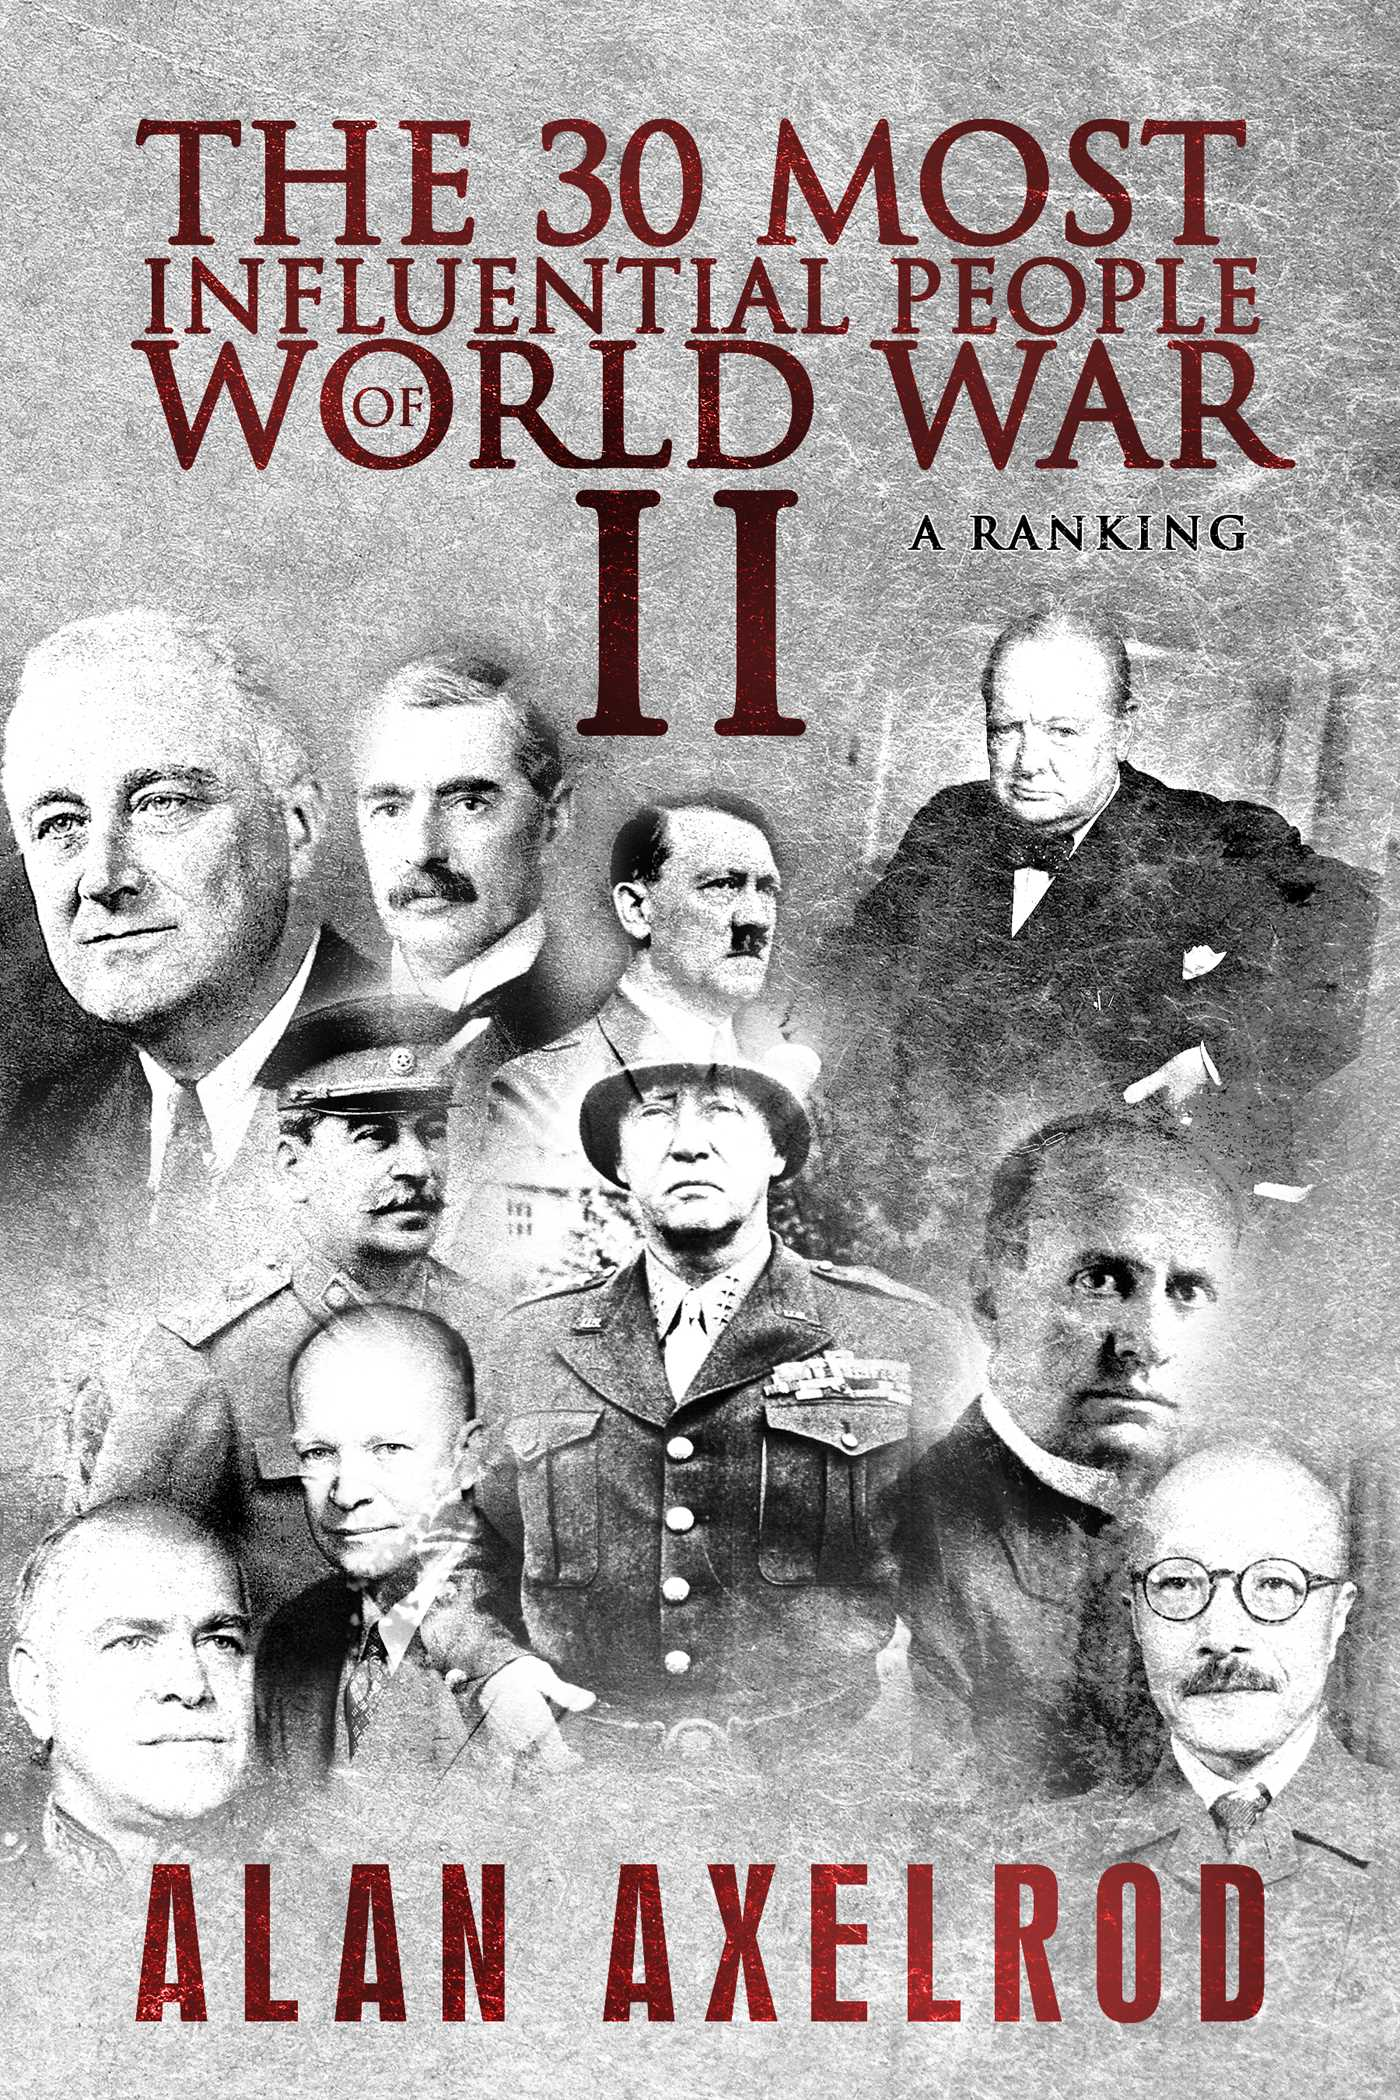 The 30 most influential people of world war ii 9781682616109 hr